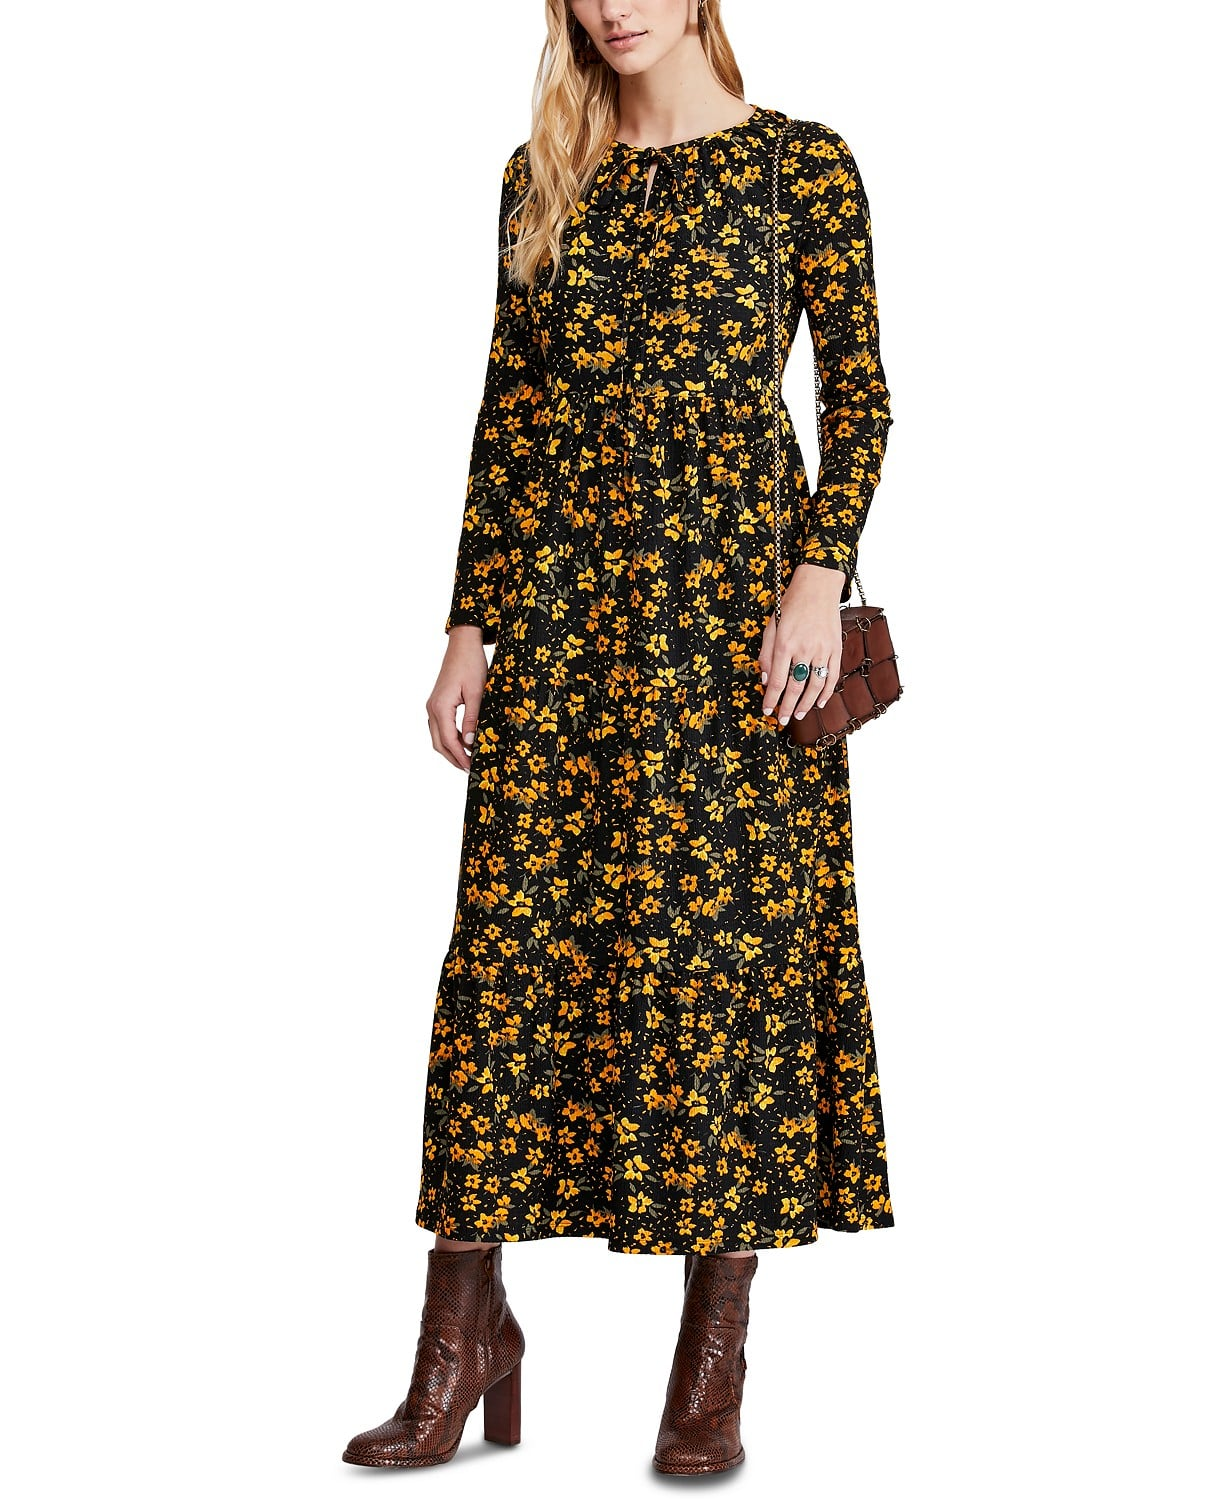 Free People Tiers Of Joy Midi Dress 26 Fall Dresses That